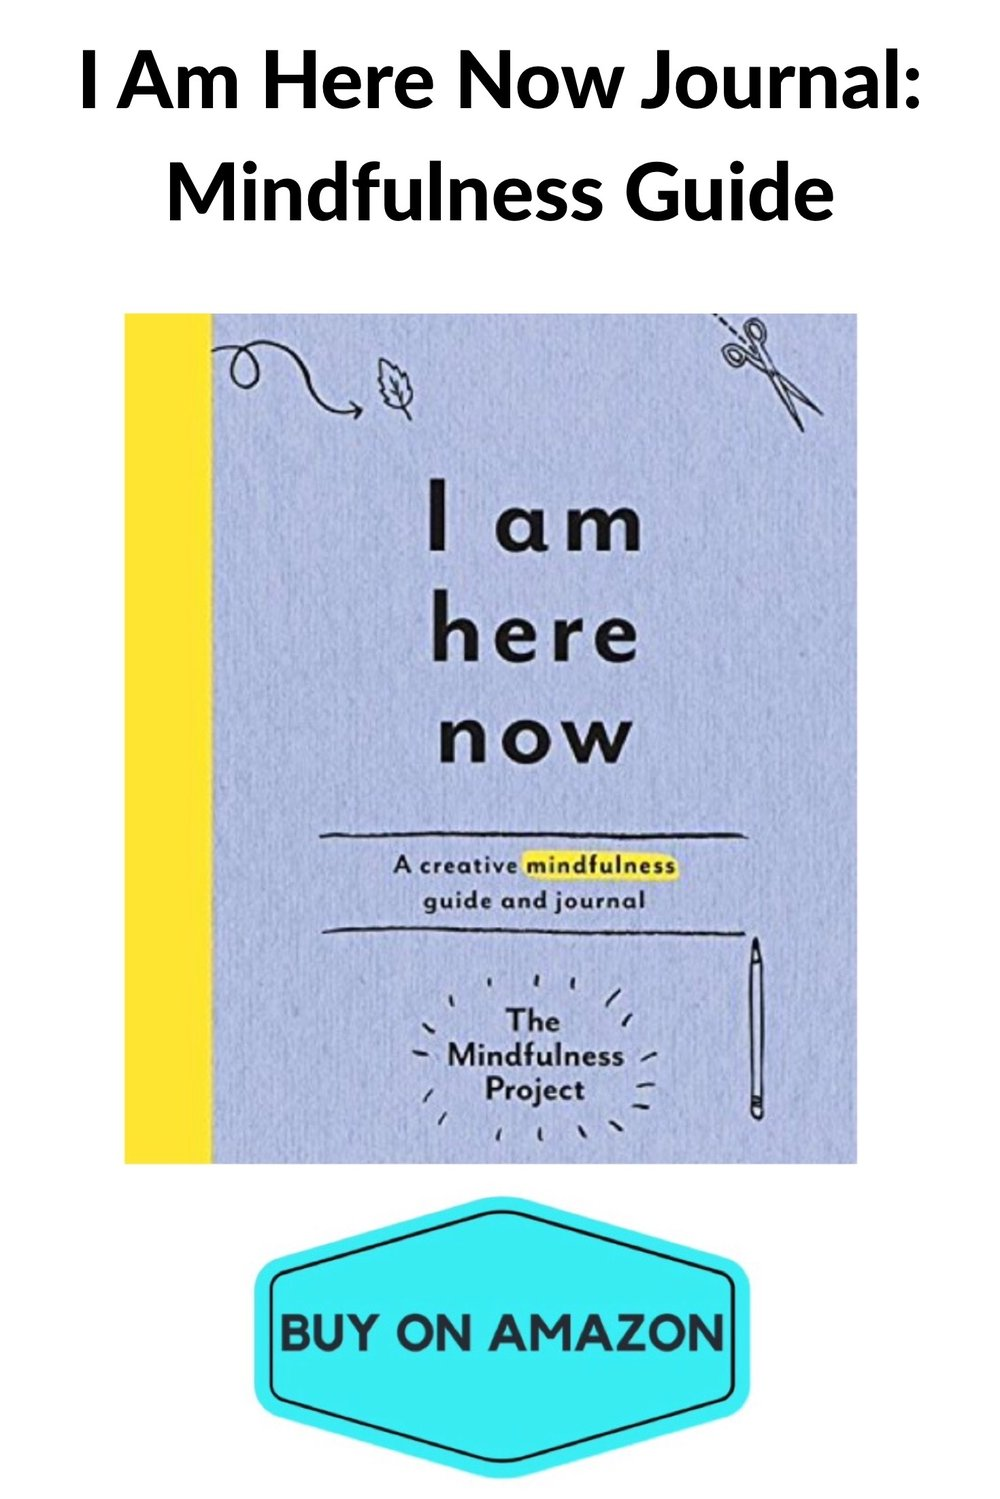 'I Am Here Now' Journal: Mindfulness Guide